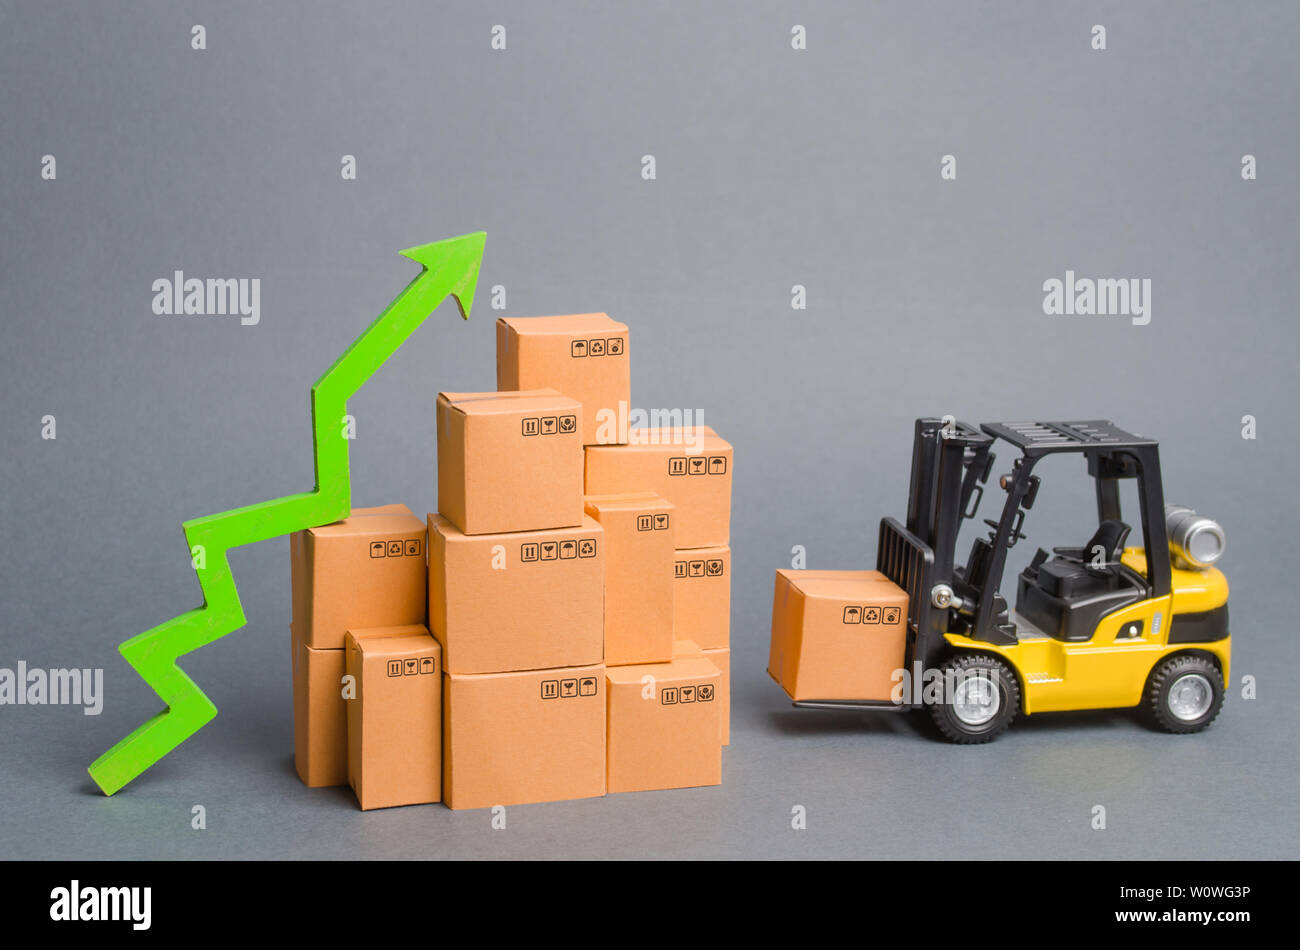 Yellow Forklift truck brings the box to a stack of boxes and a green arrow up. raise economic indicators. exports, imports. sales rise. High trade vol - Stock Image